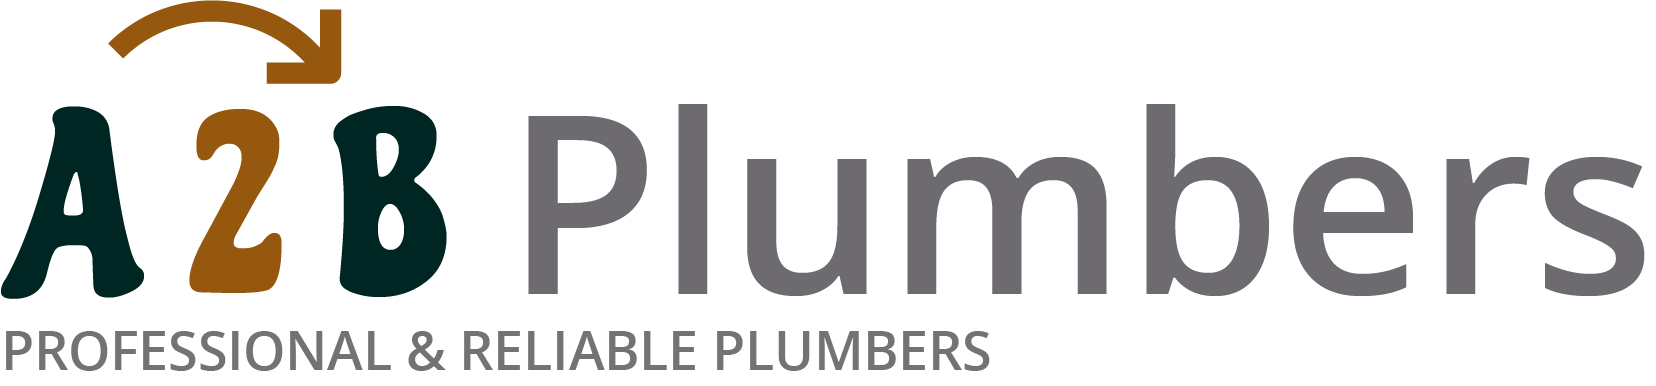 If you need a boiler installed, a radiator repaired or a leaking tap fixed, call us now - we provide services for properties in Upton and the local area.